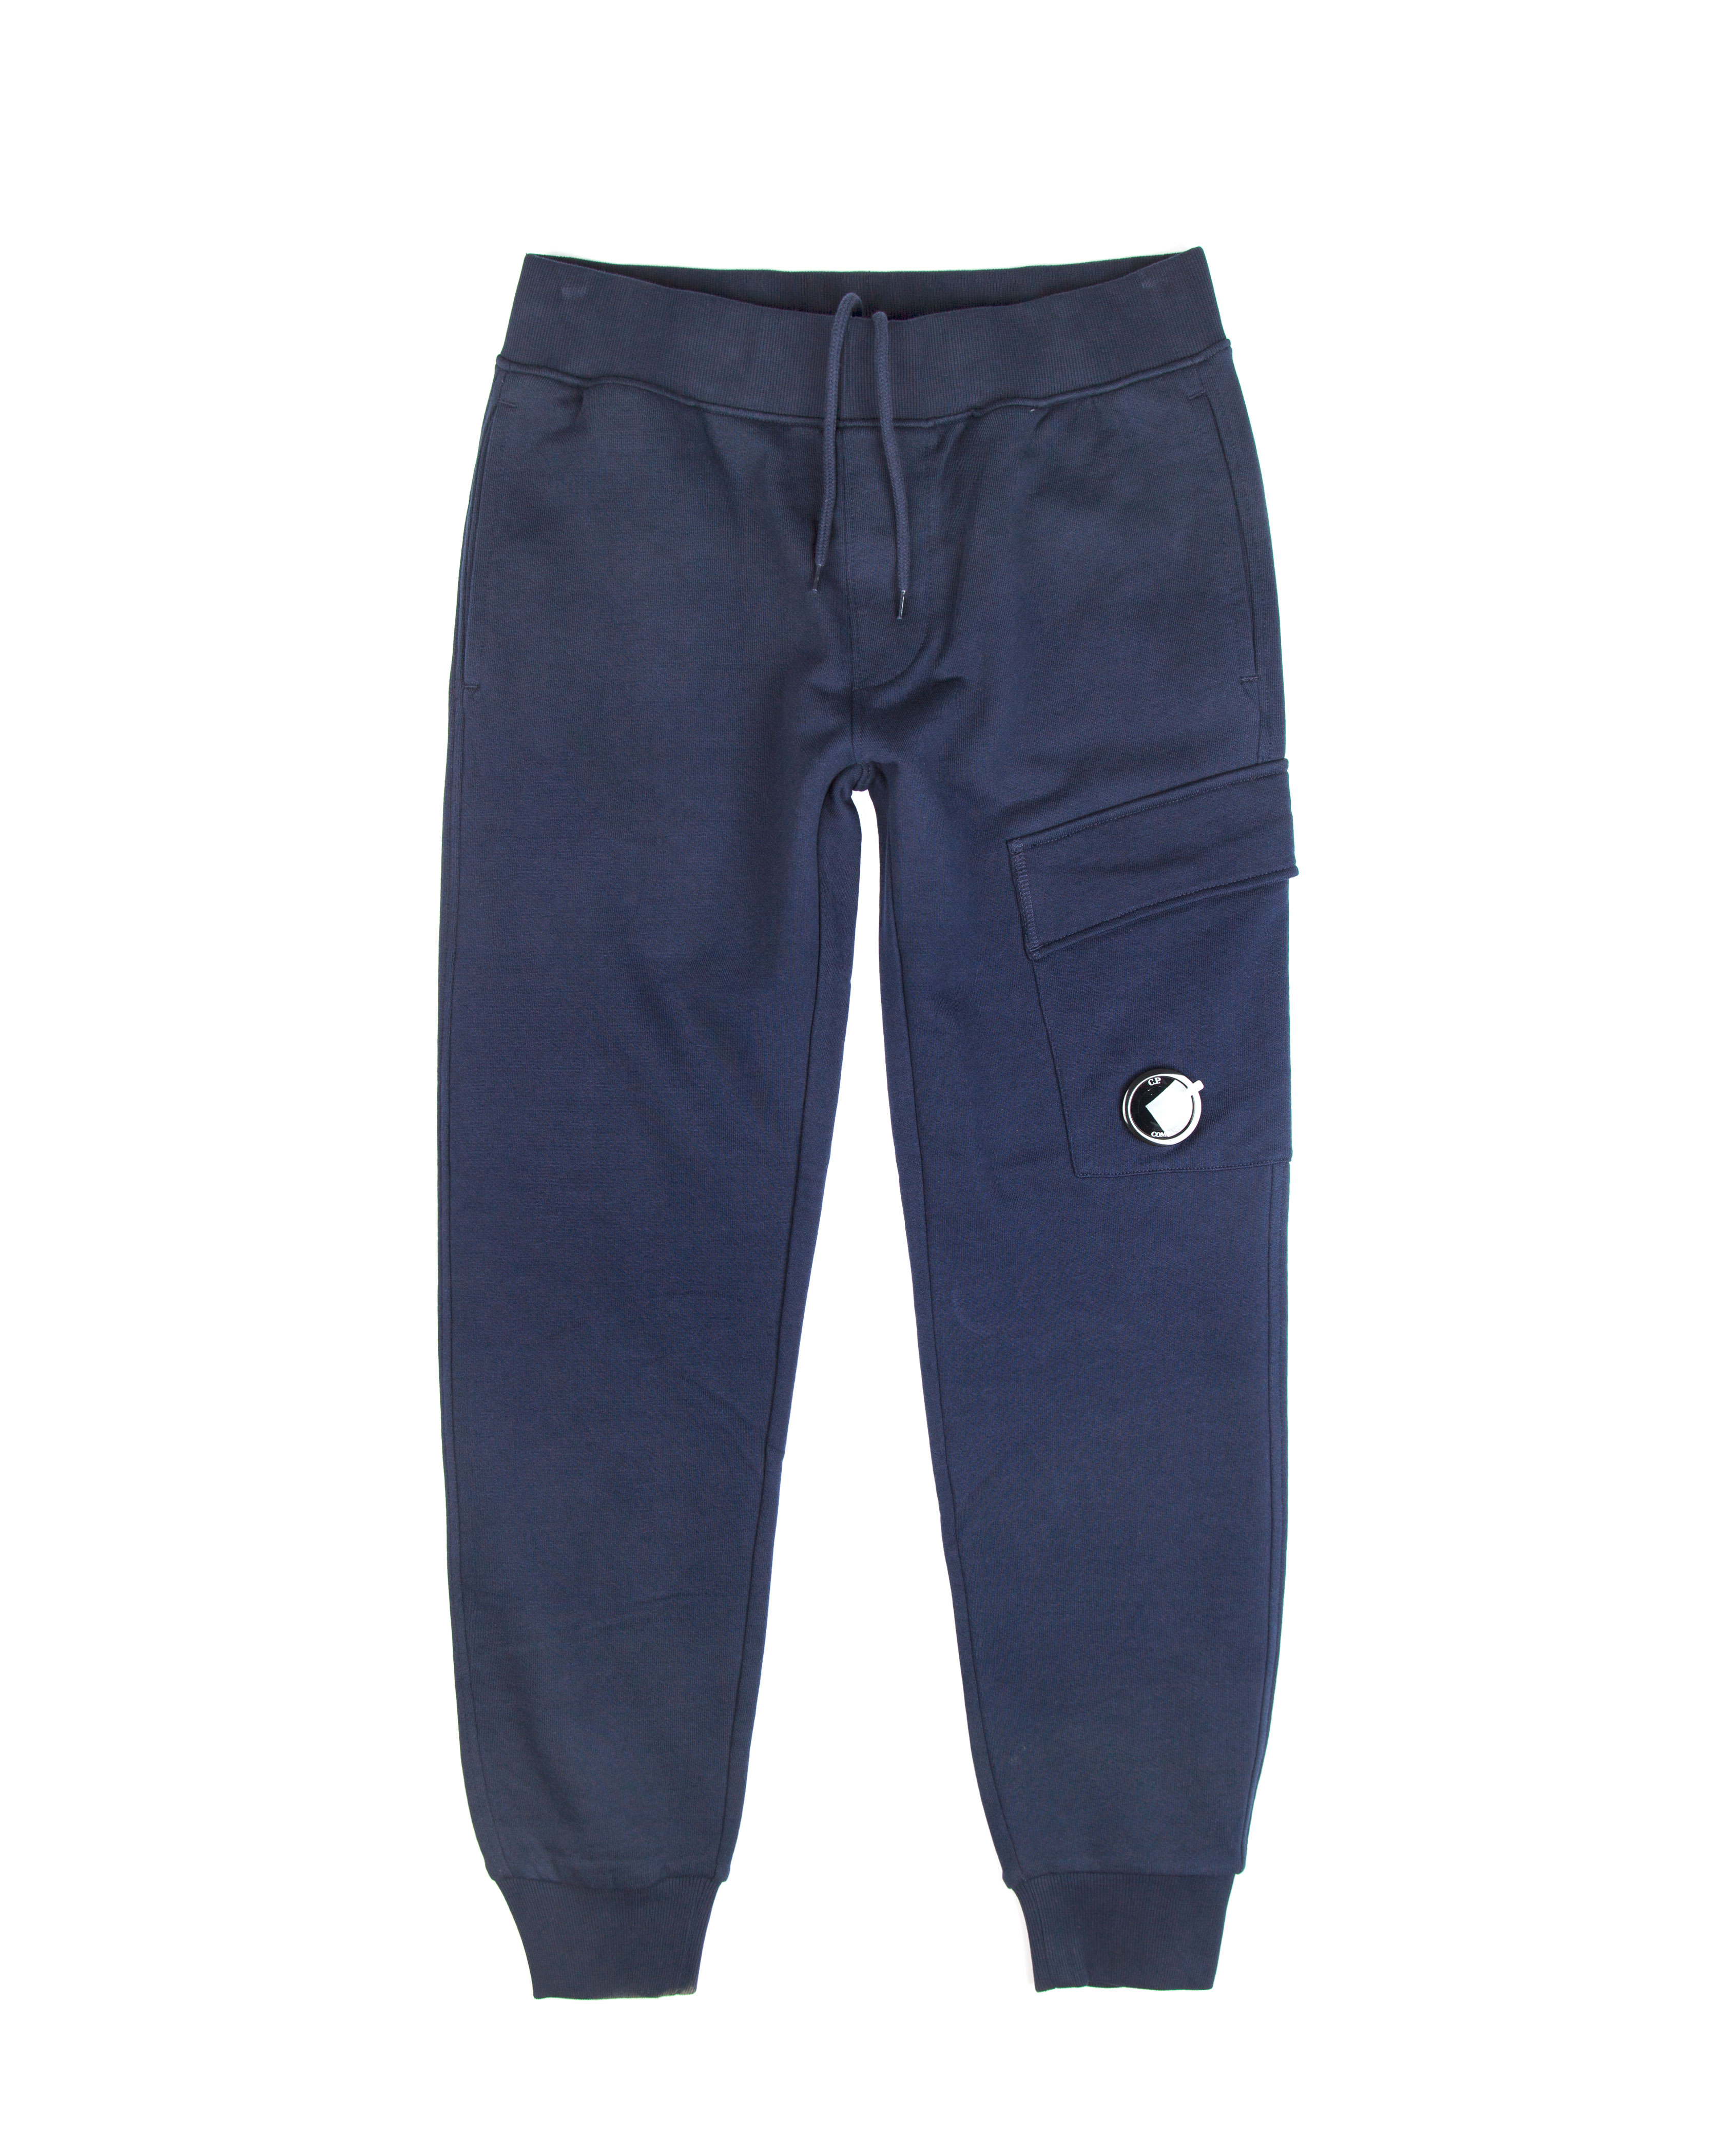 Спортивные штаны C.P.Company Lens Pocket Navy Pants